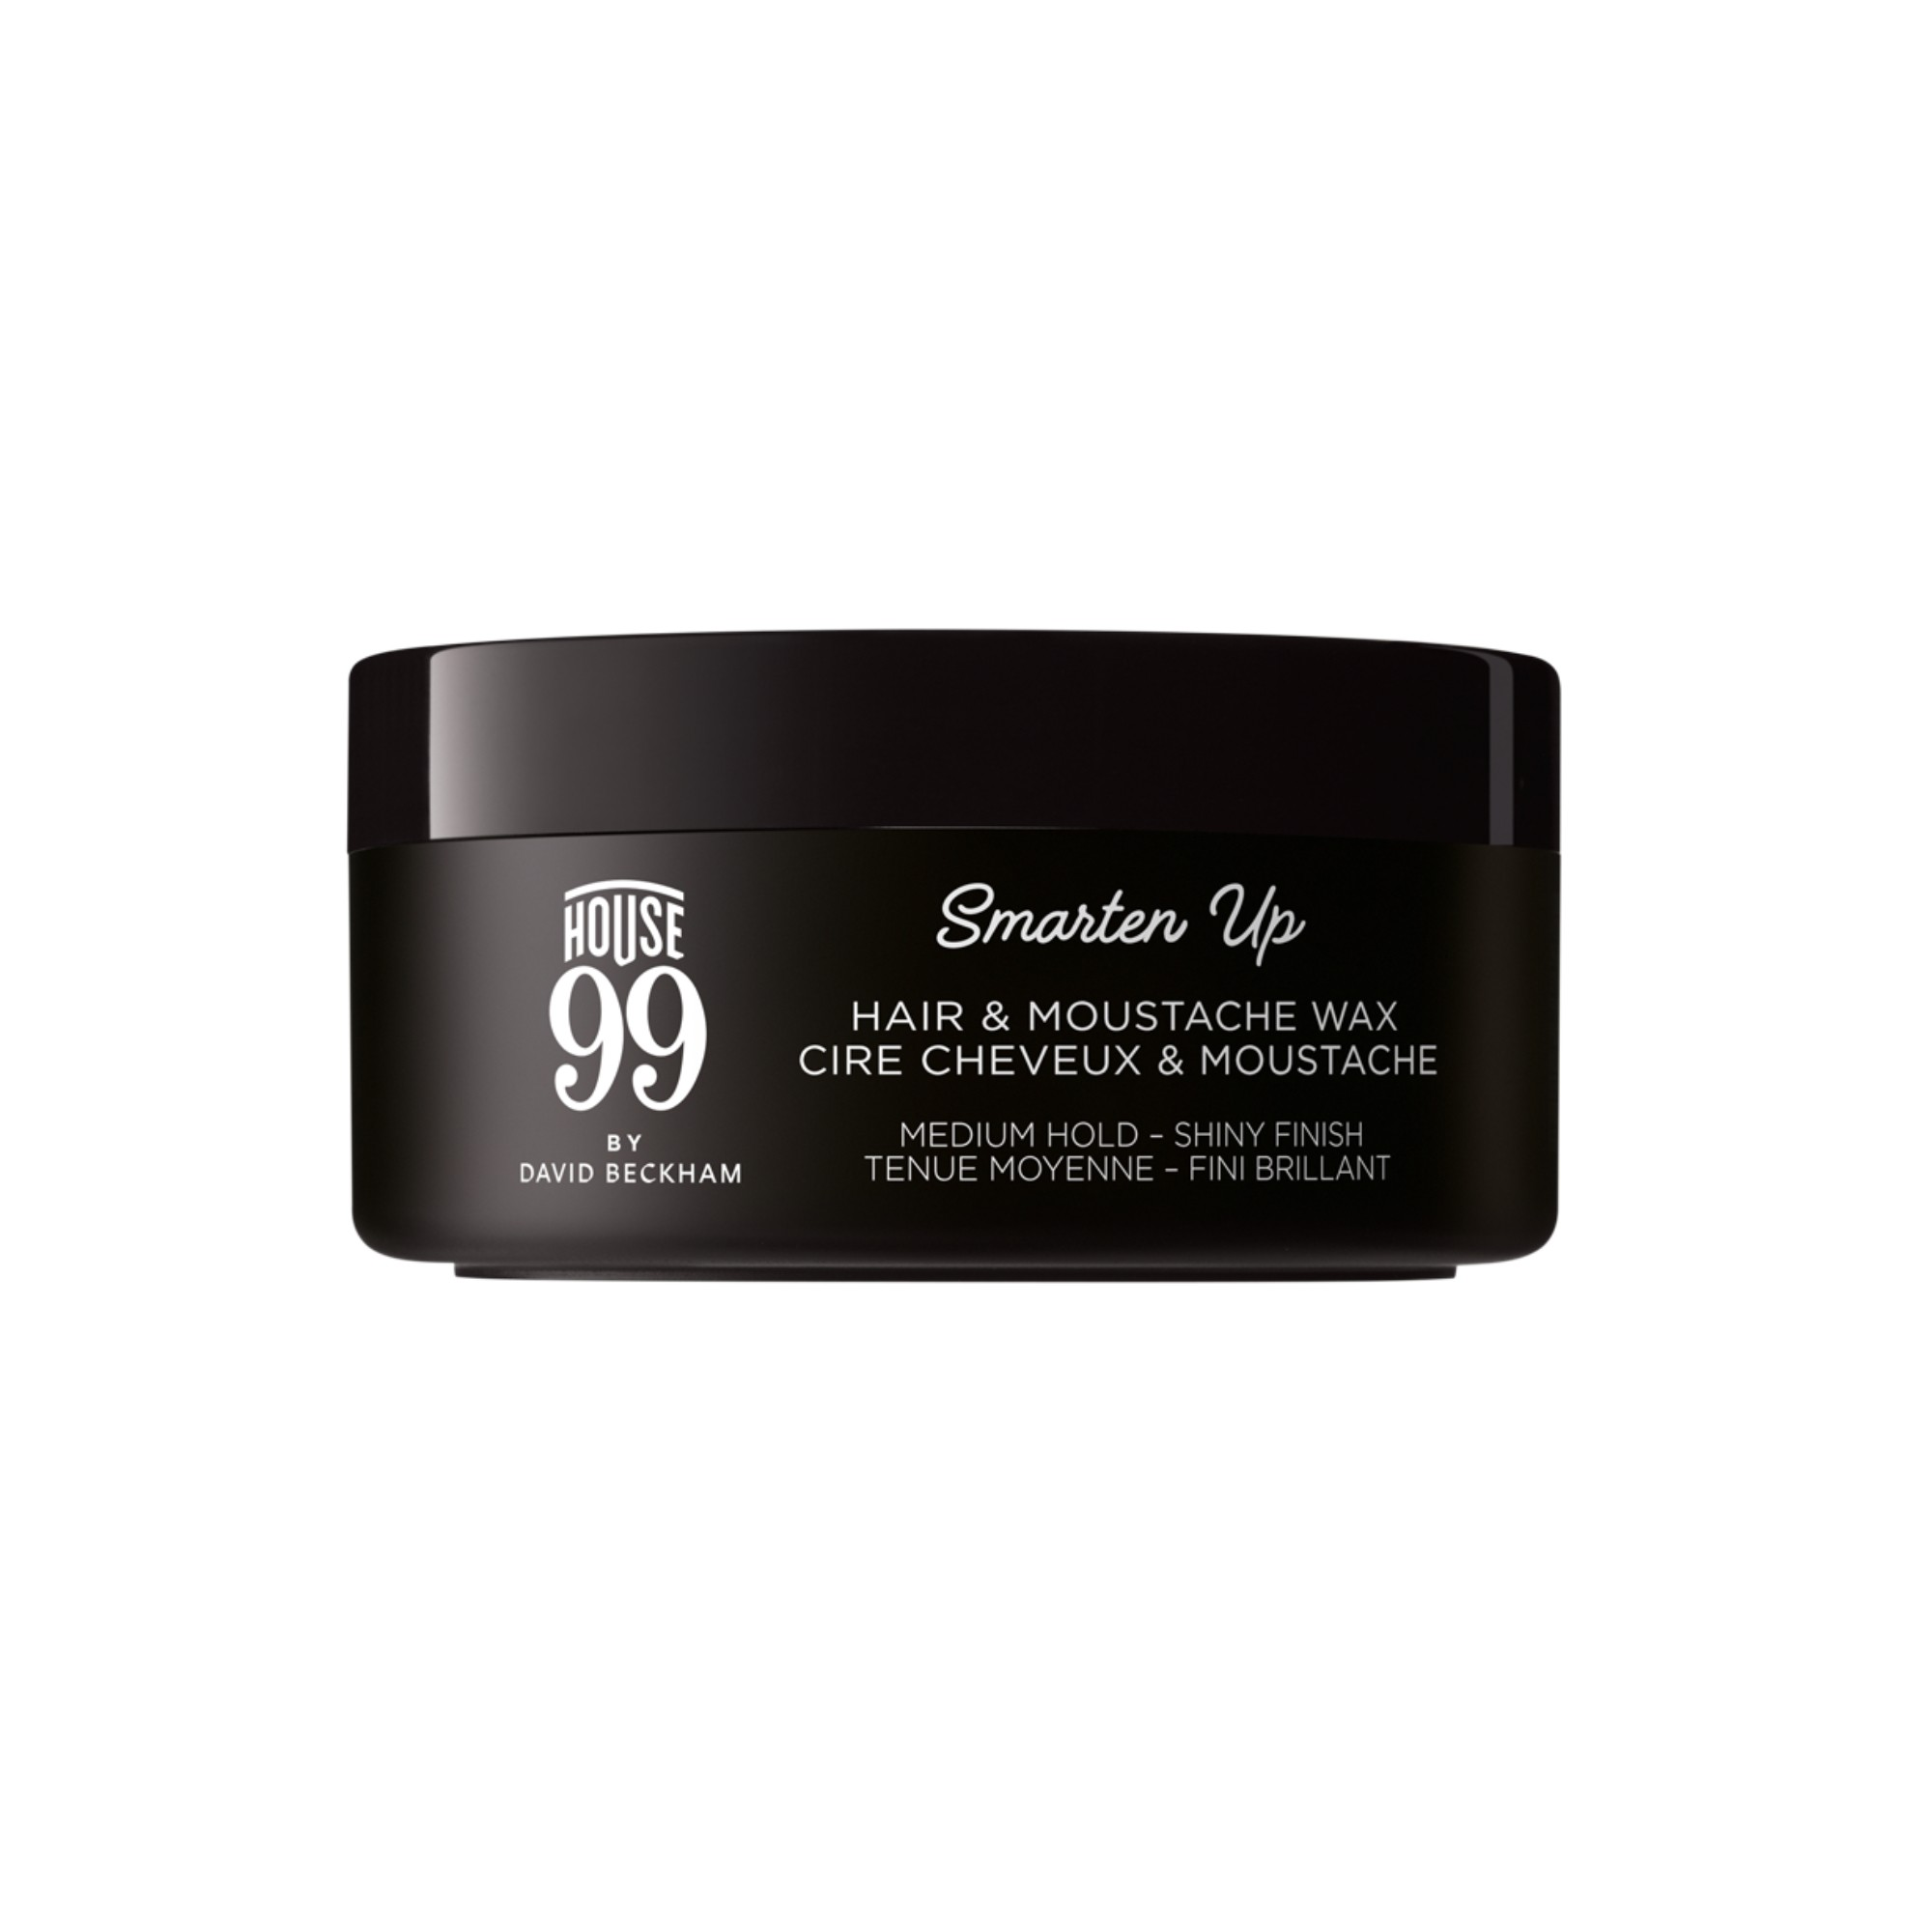 Smarten Up Styling Wax 90 ml